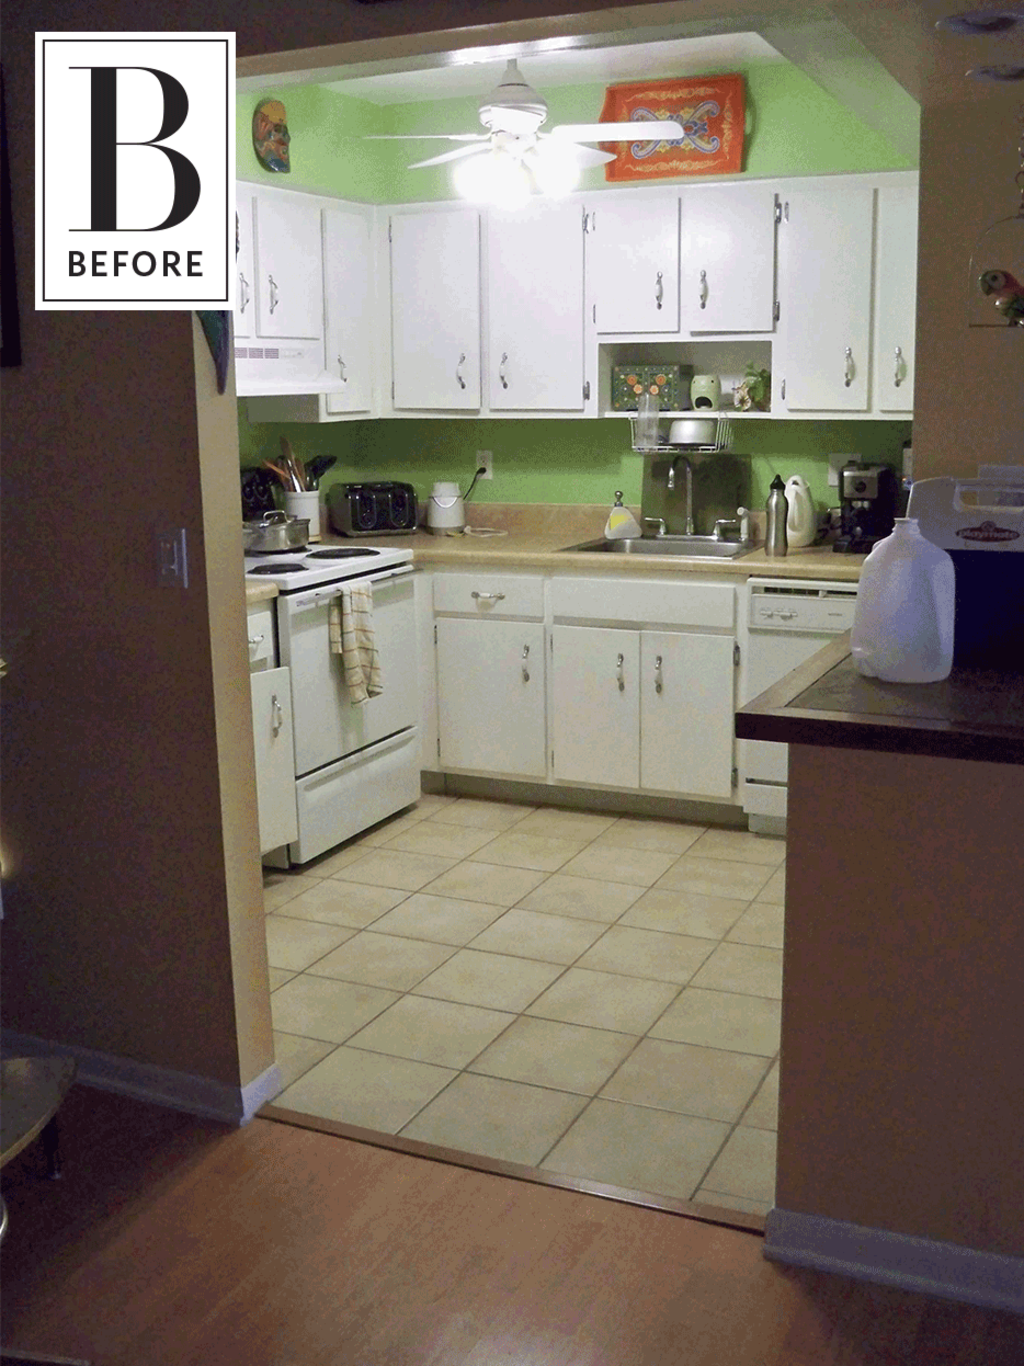 Before & After: A DIY Kitchen Remodel on a 6K Budget